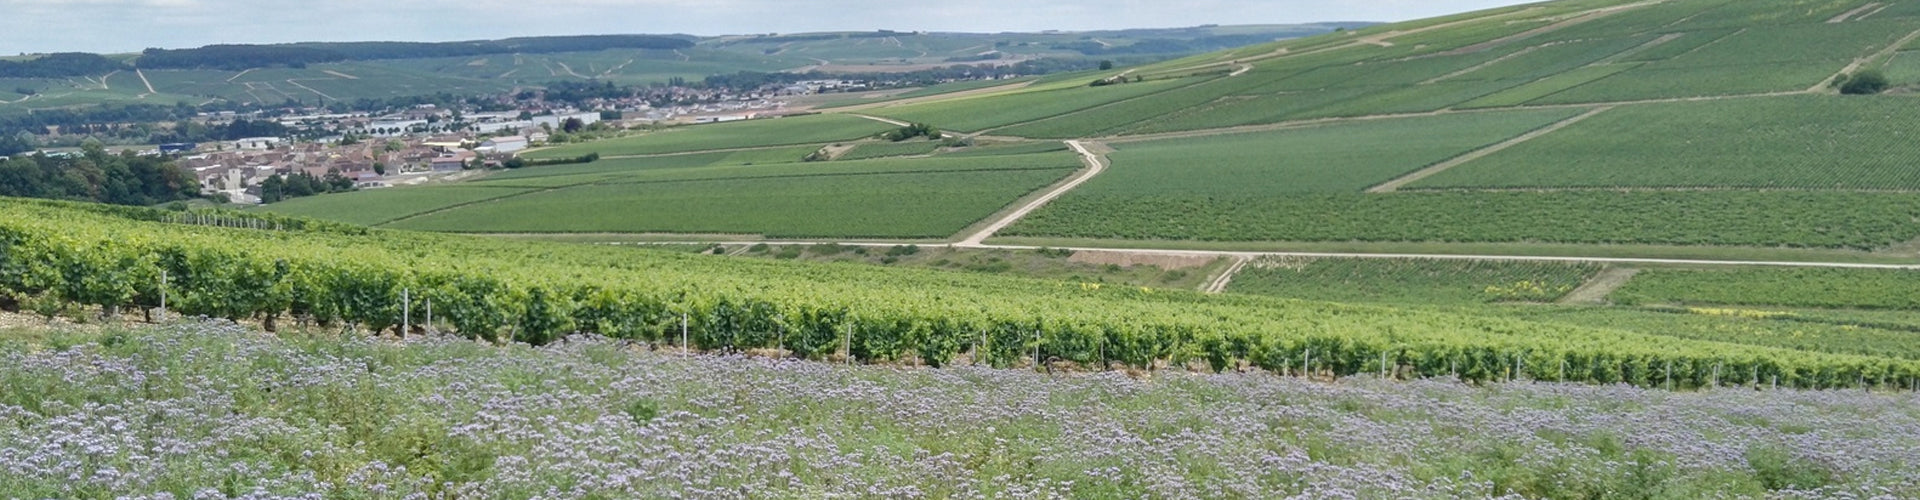 Domaine Sébastien Dampt Vineyards in Chablis